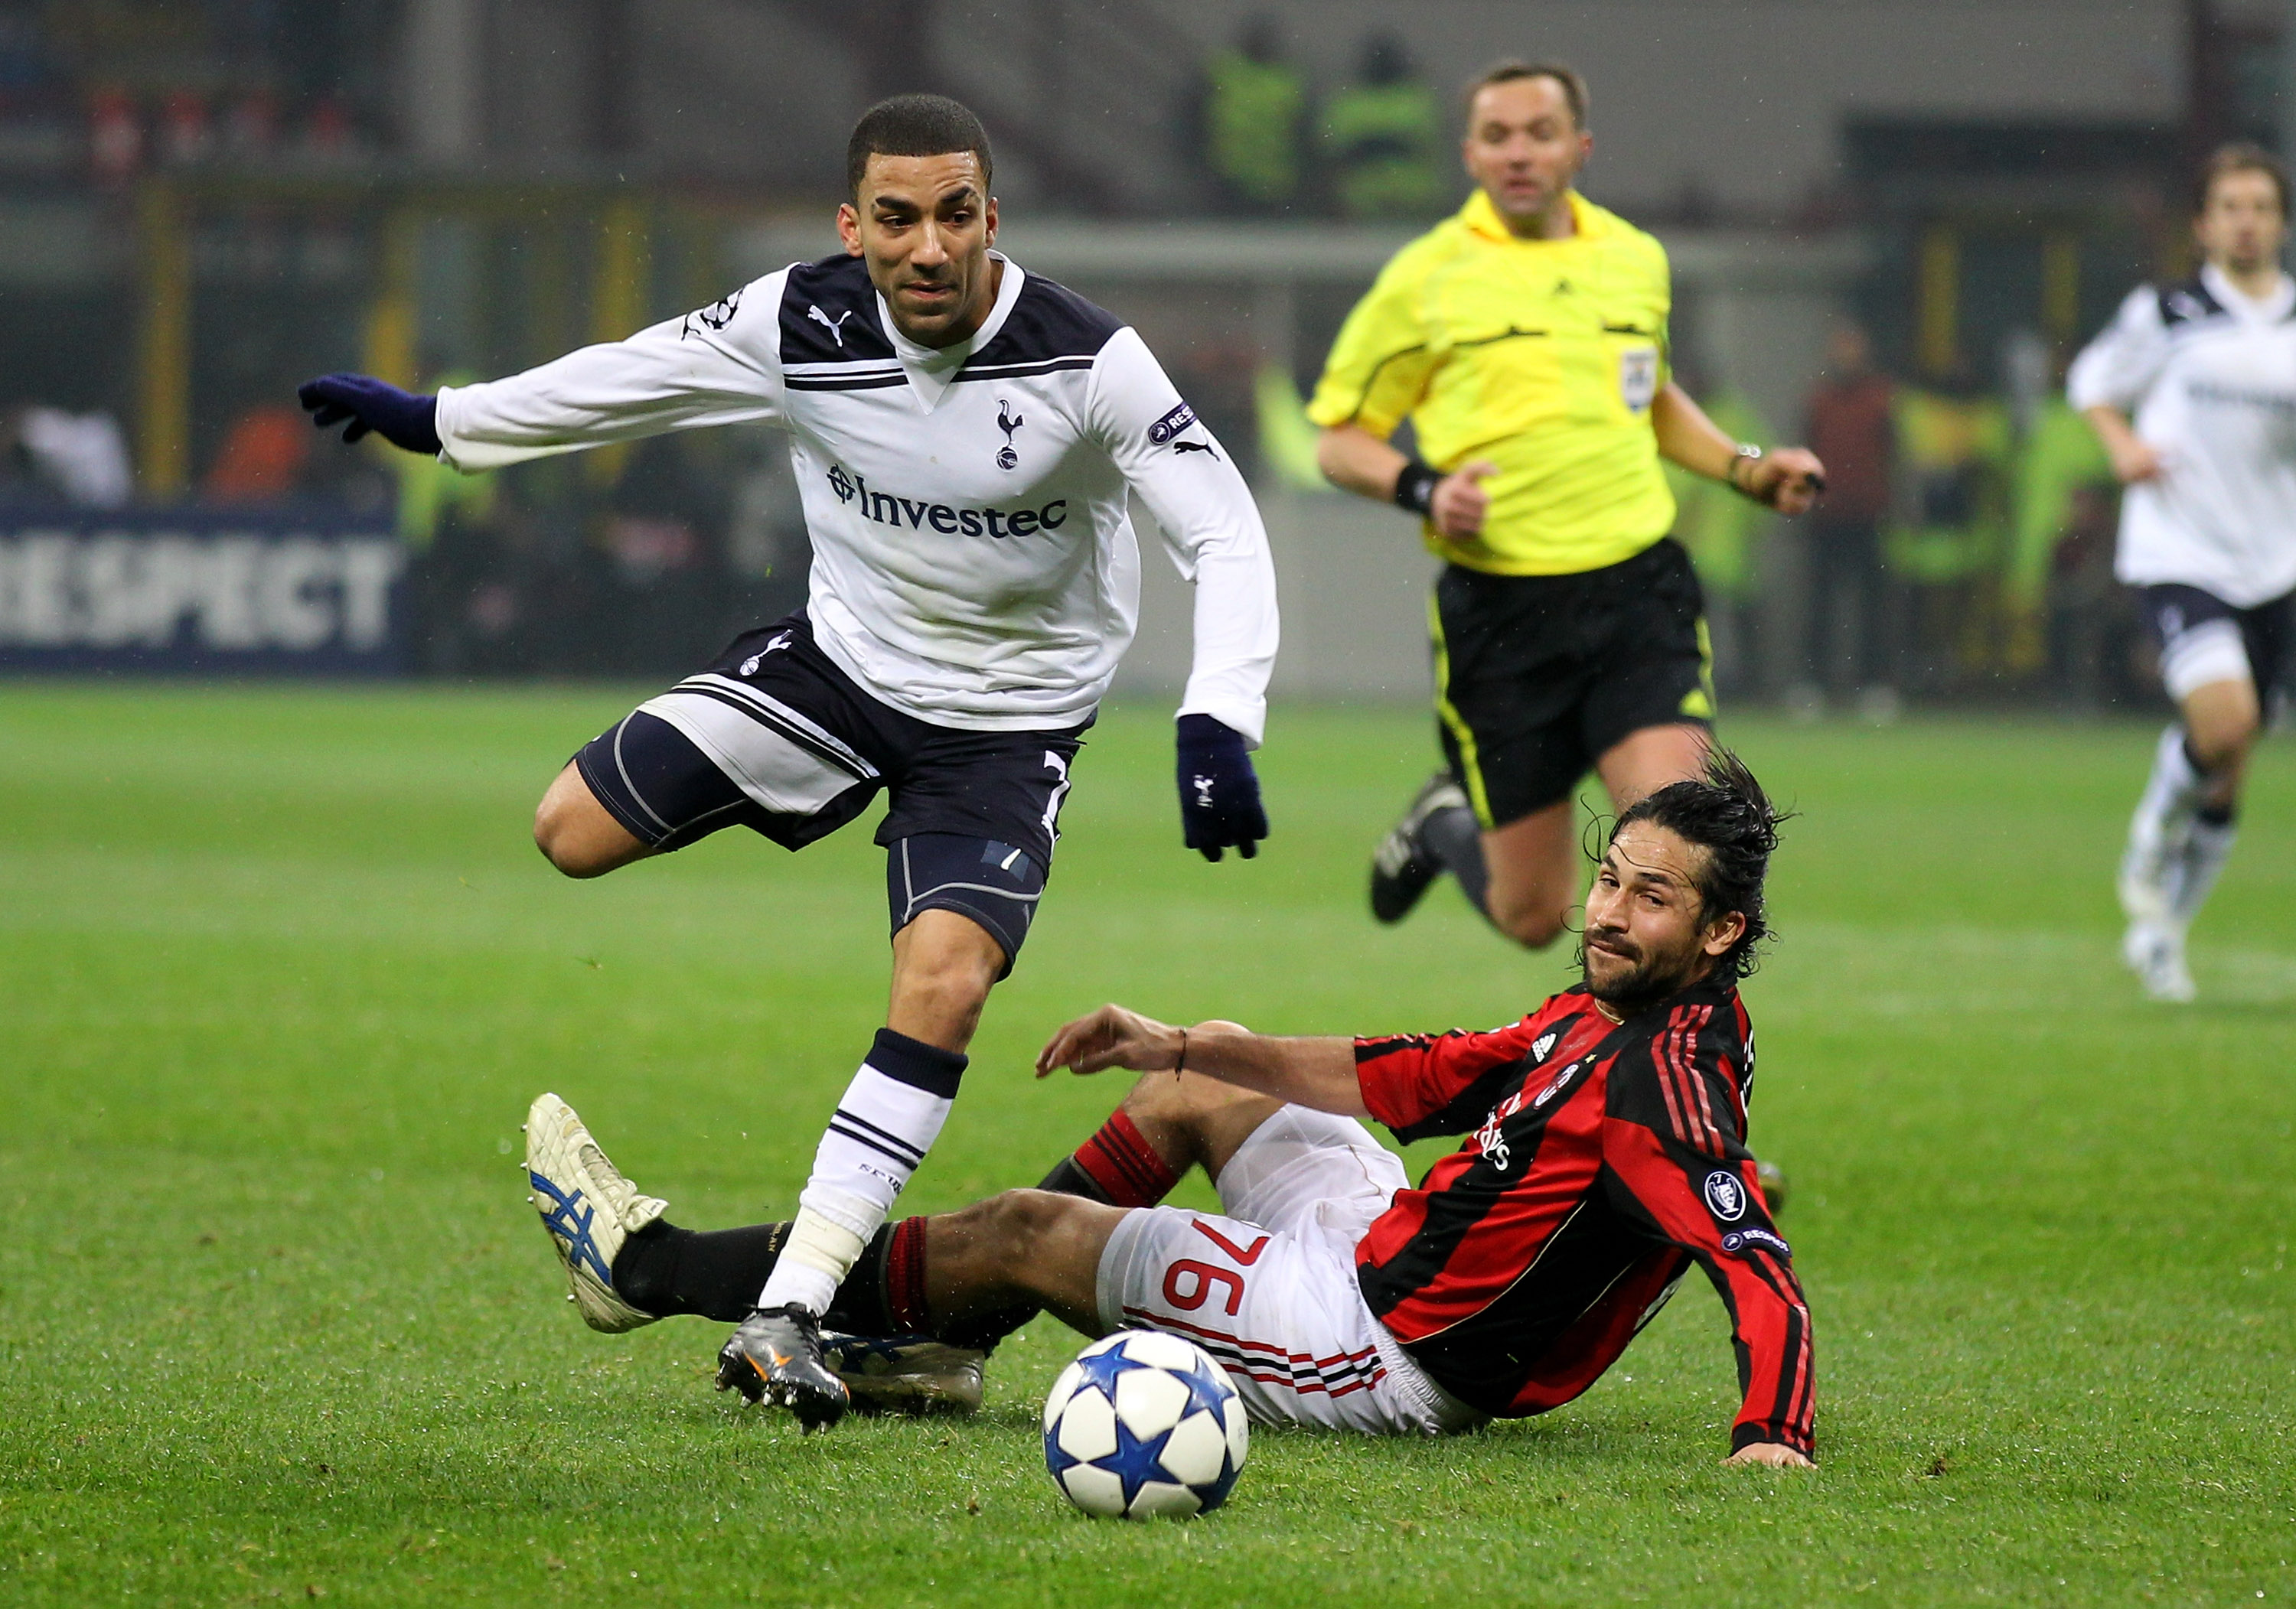 MILAN, ITALY - FEBRUARY 15:   Aaron Lennon of Tottenham Hotspur beats Mario Yepes of AC Milan to set up the winning goal during the UEFA Champions League round of 16 first leg match between AC Milan and Tottenham Hotspur at Stadio Giuseppe Meazza on Febru